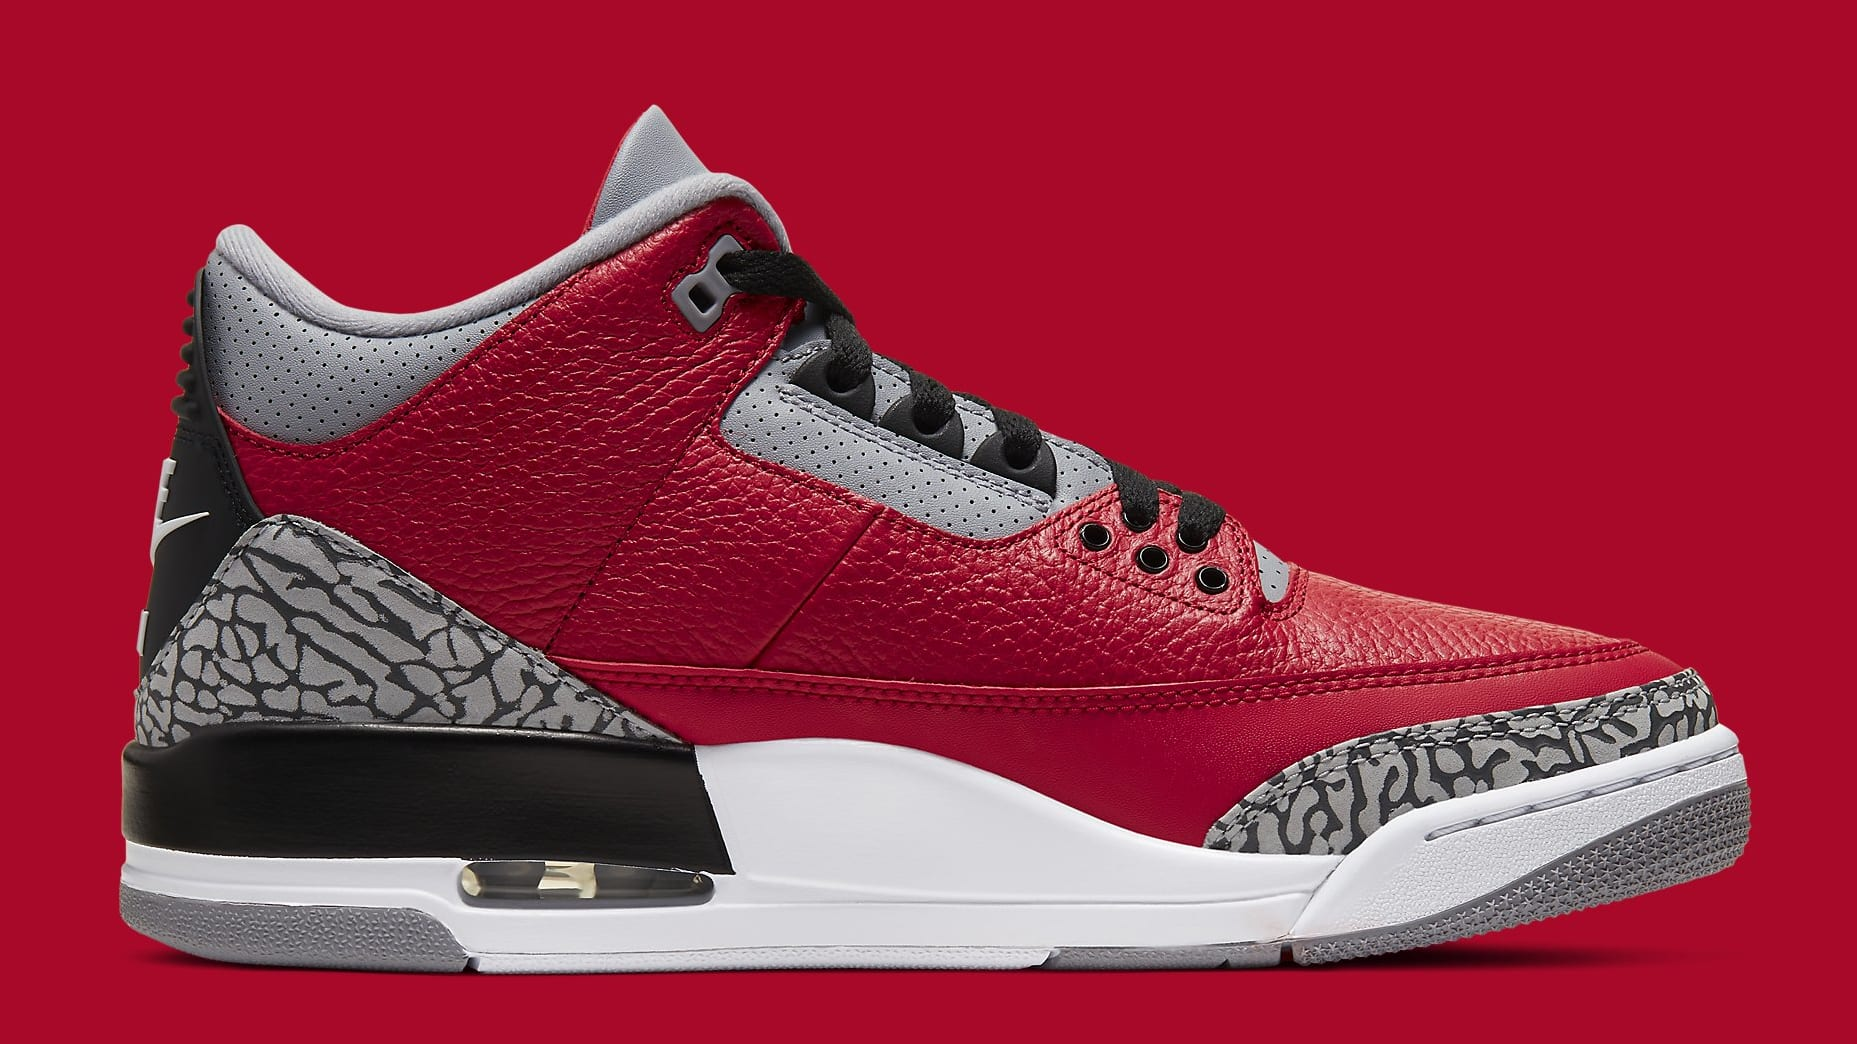 Air Jordan 3 CHI Exclusive Release Date CU2277-600 Medial